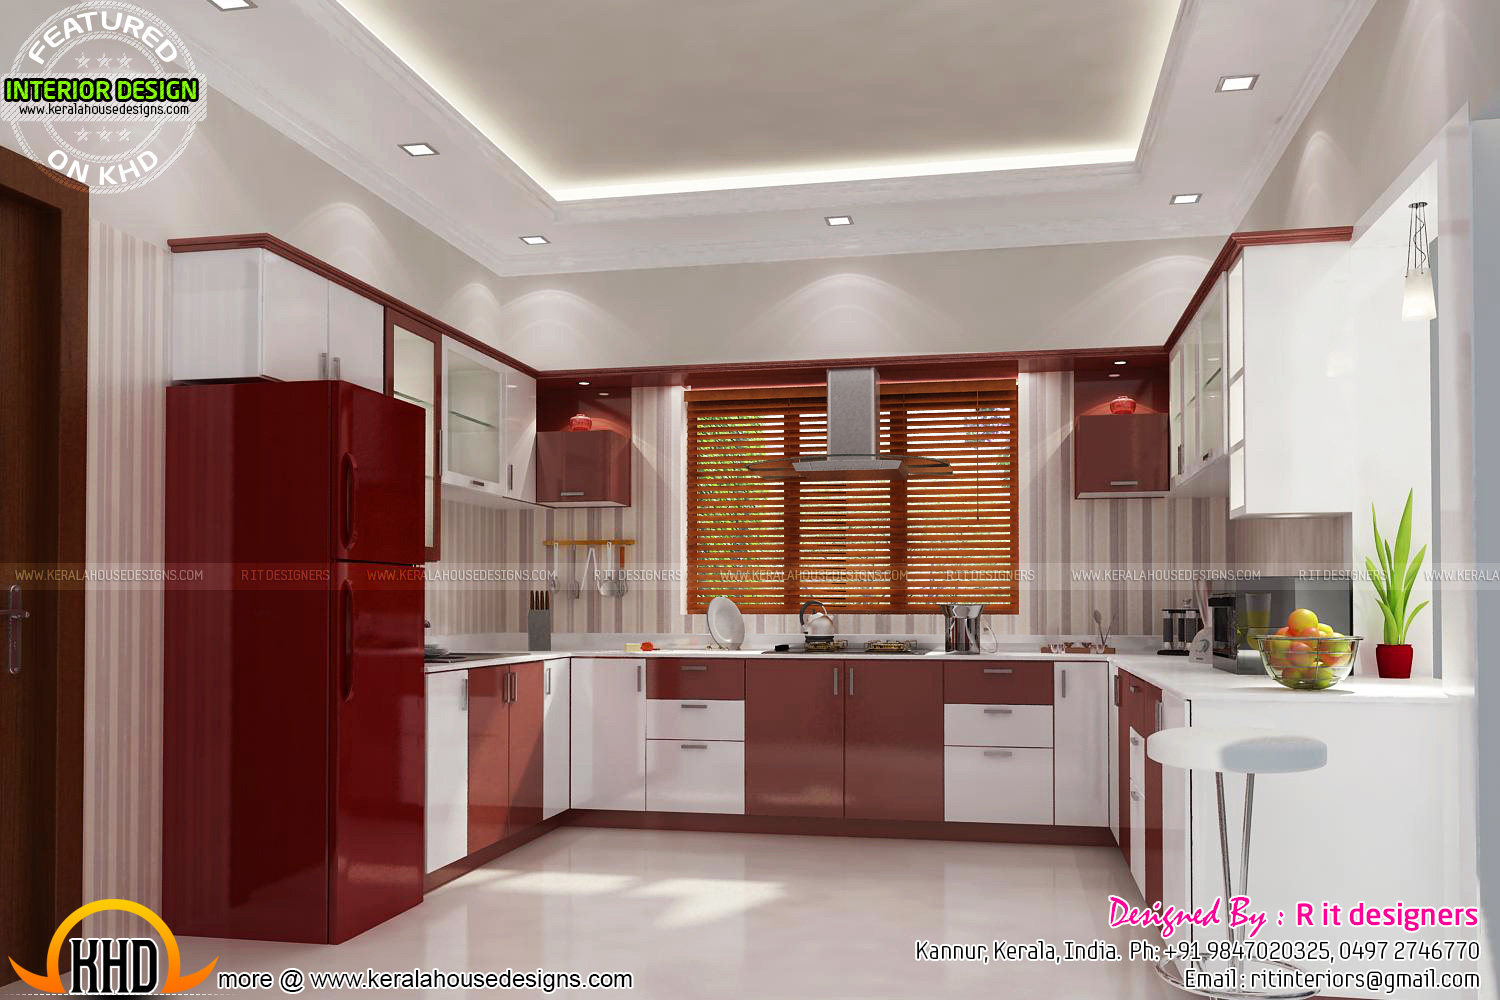 Bifurcated stair bedroom kitchen interiors kerala home for New kitchen designs in kerala